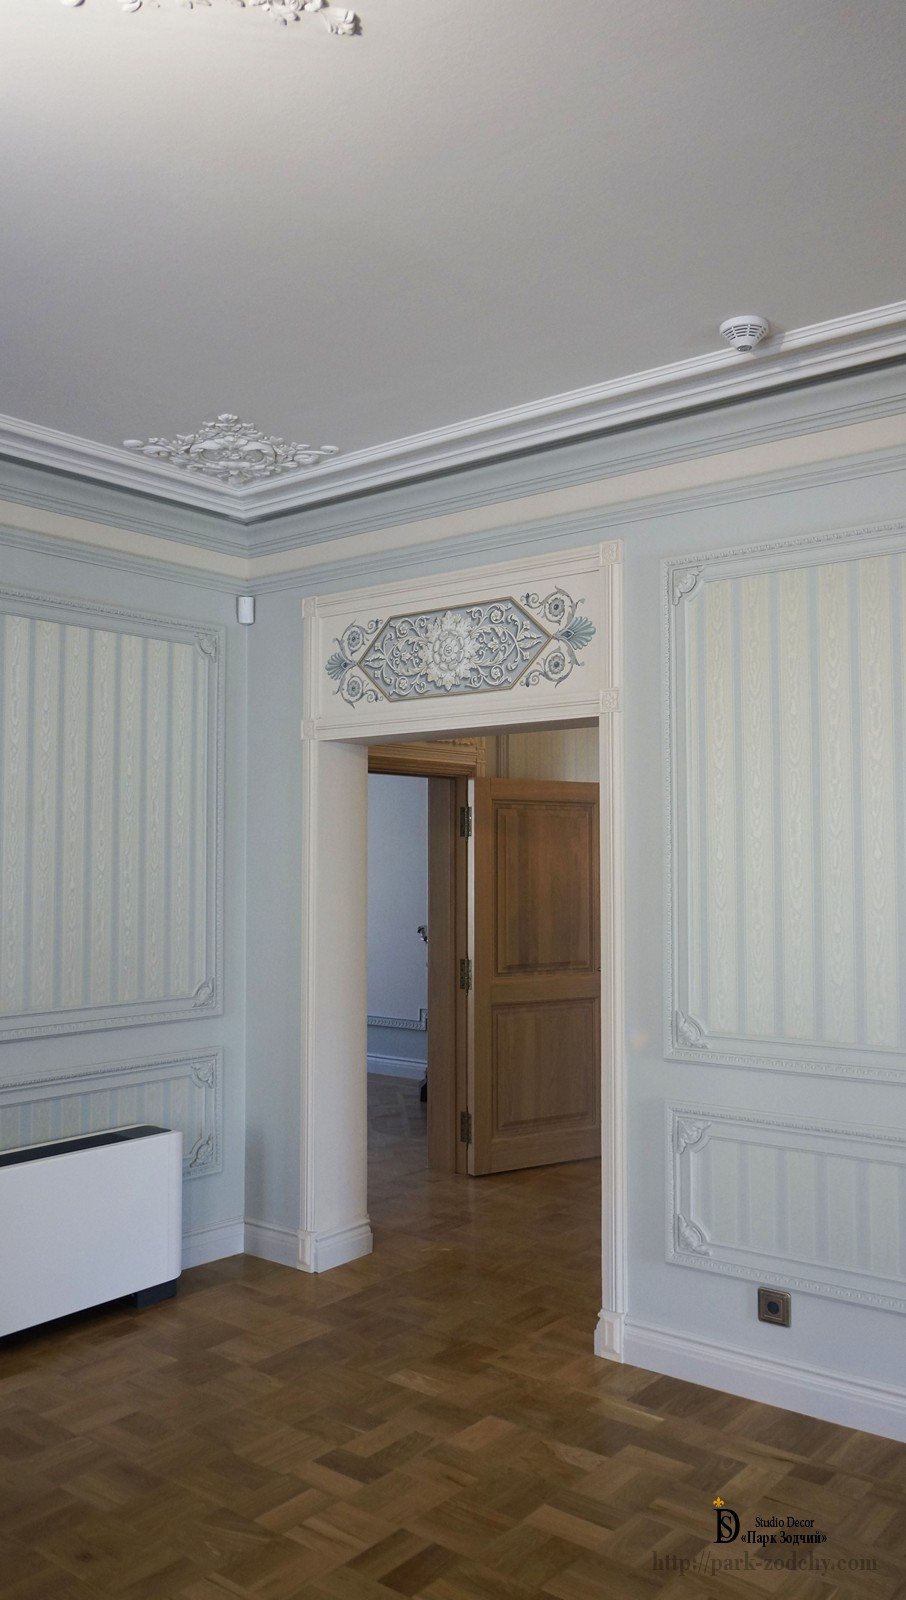 Hall decoration with stucco and painting grisaille